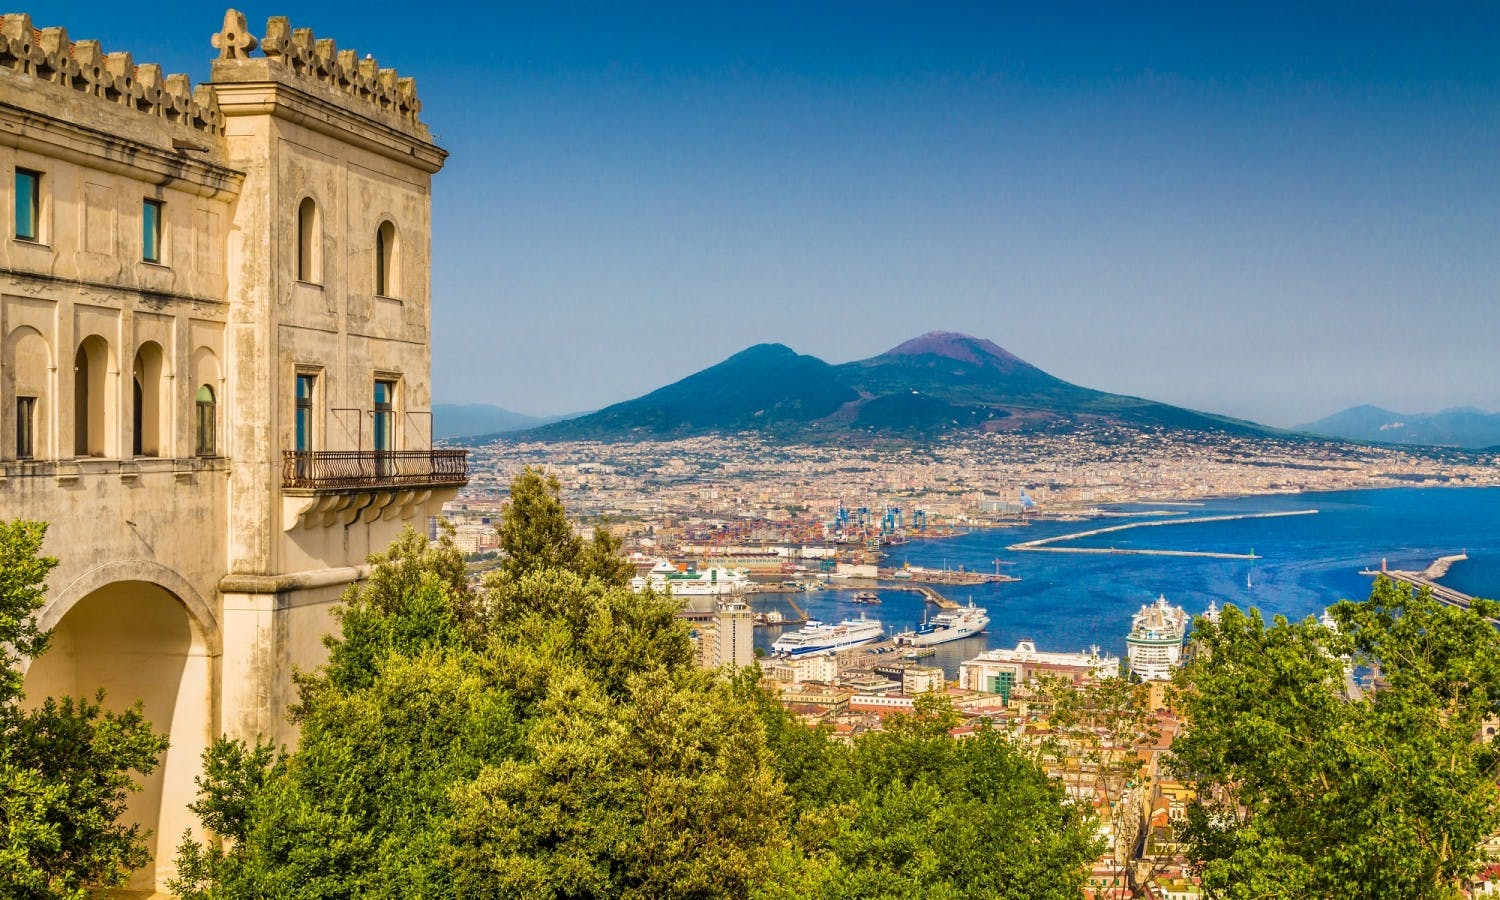 Naples historic center walking tour